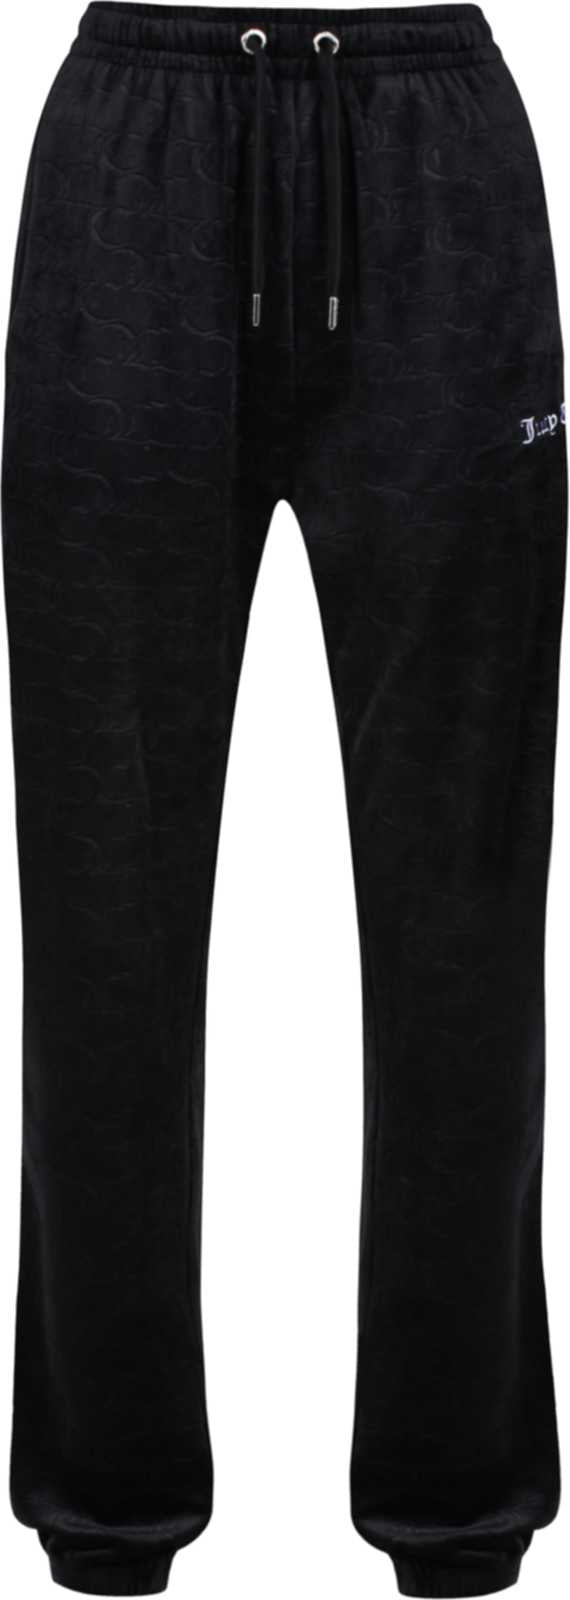 Juicy Couture Lilian Embossed Velour Bottoms	Black